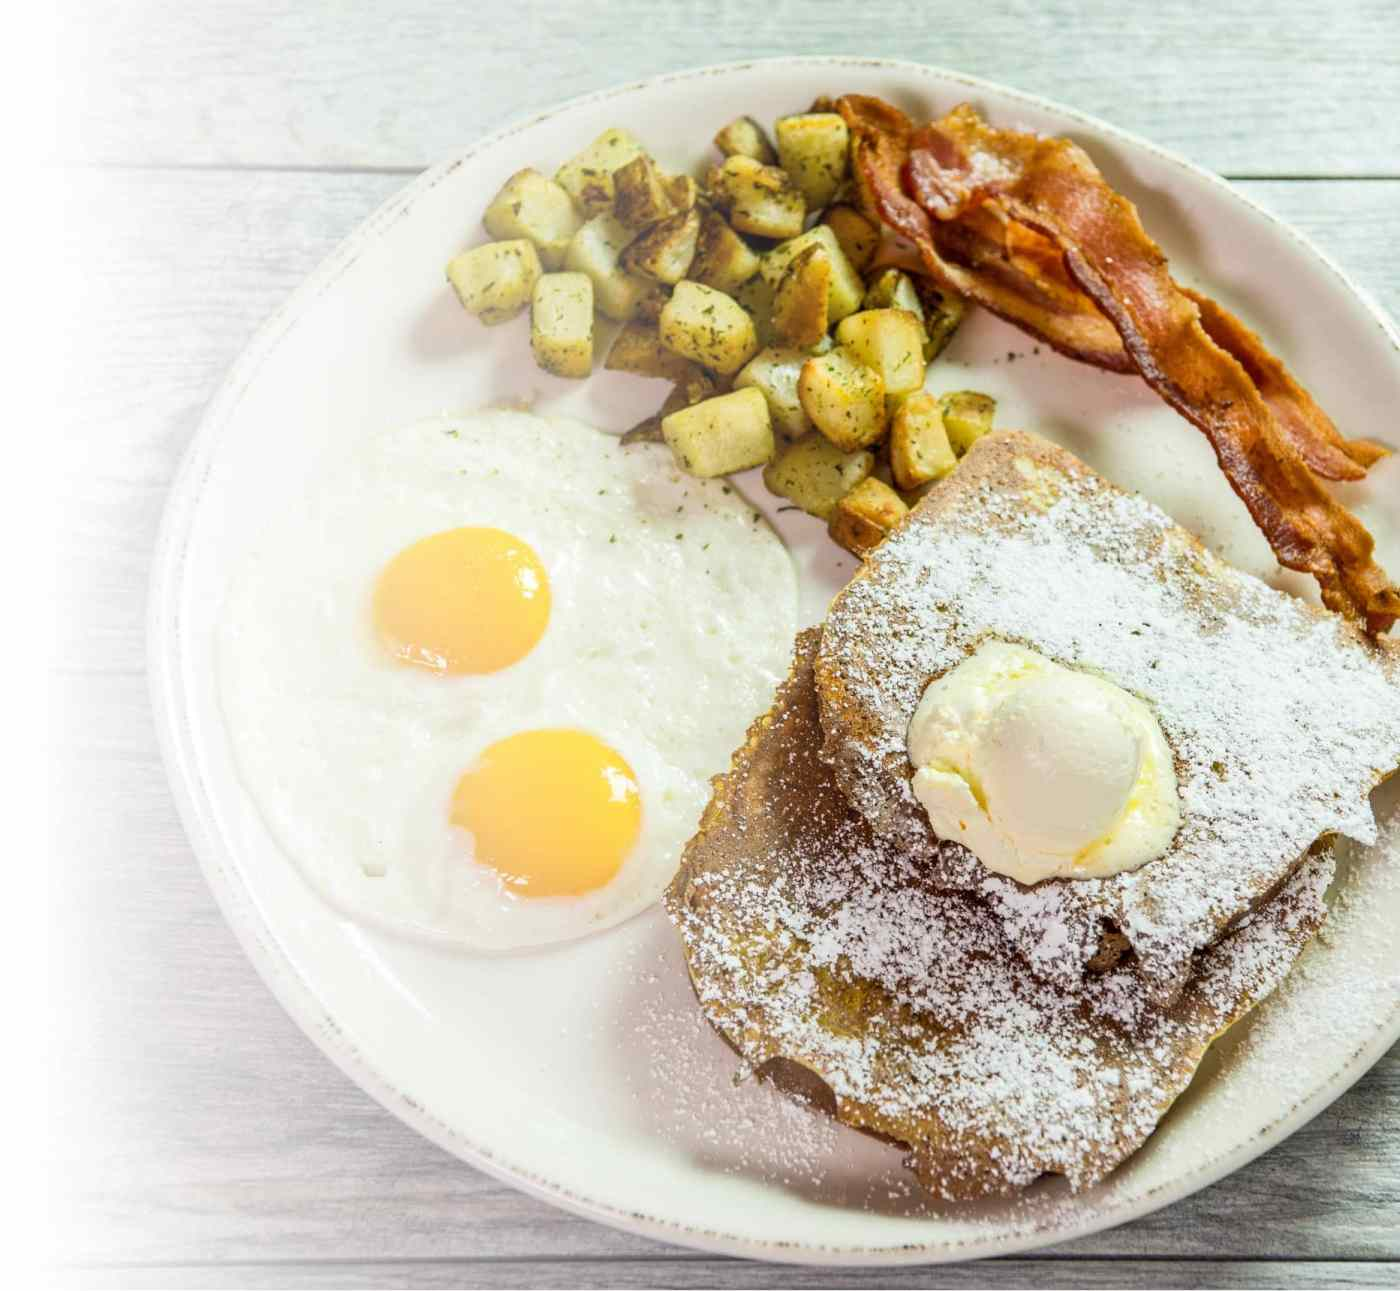 Egg and griddle breakfast combos